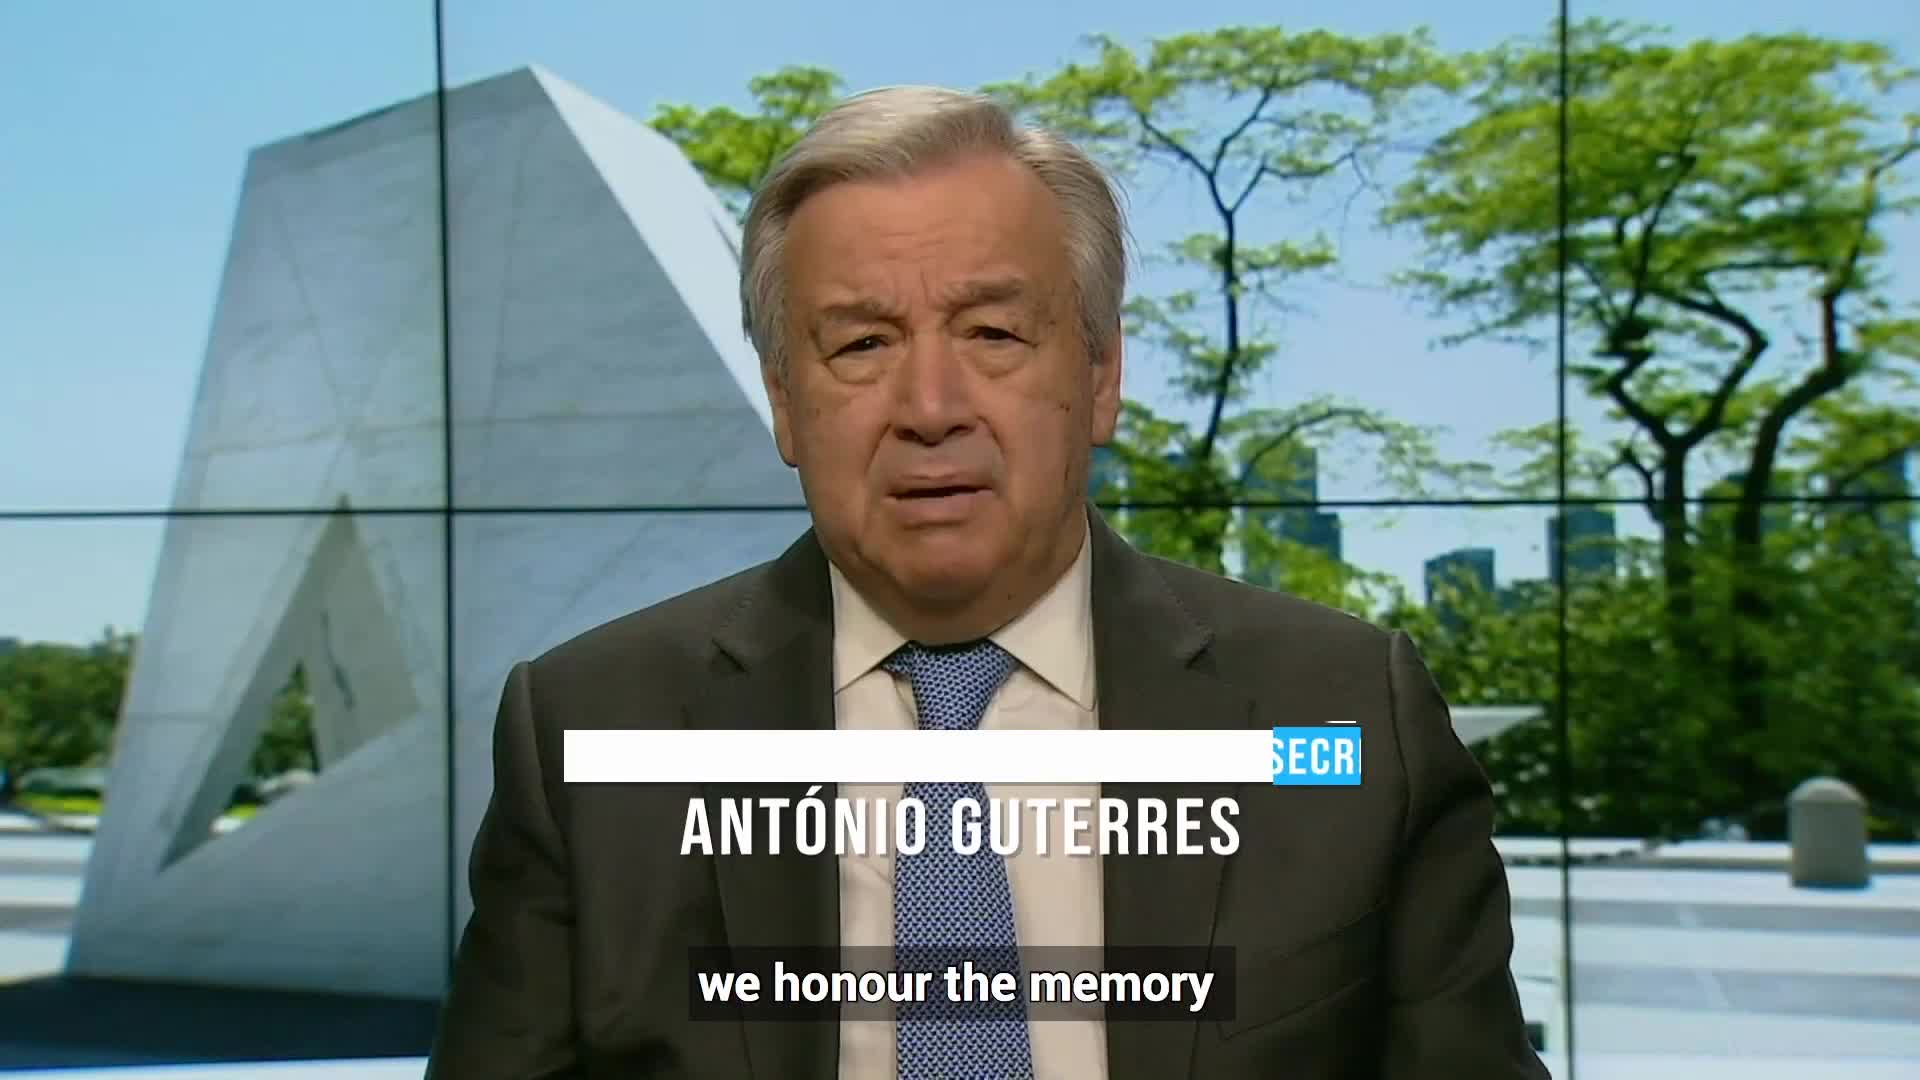 The Root💰 of ALL Evil: Head UN Chief Recalls Slavery; NO Mention of White Slaves